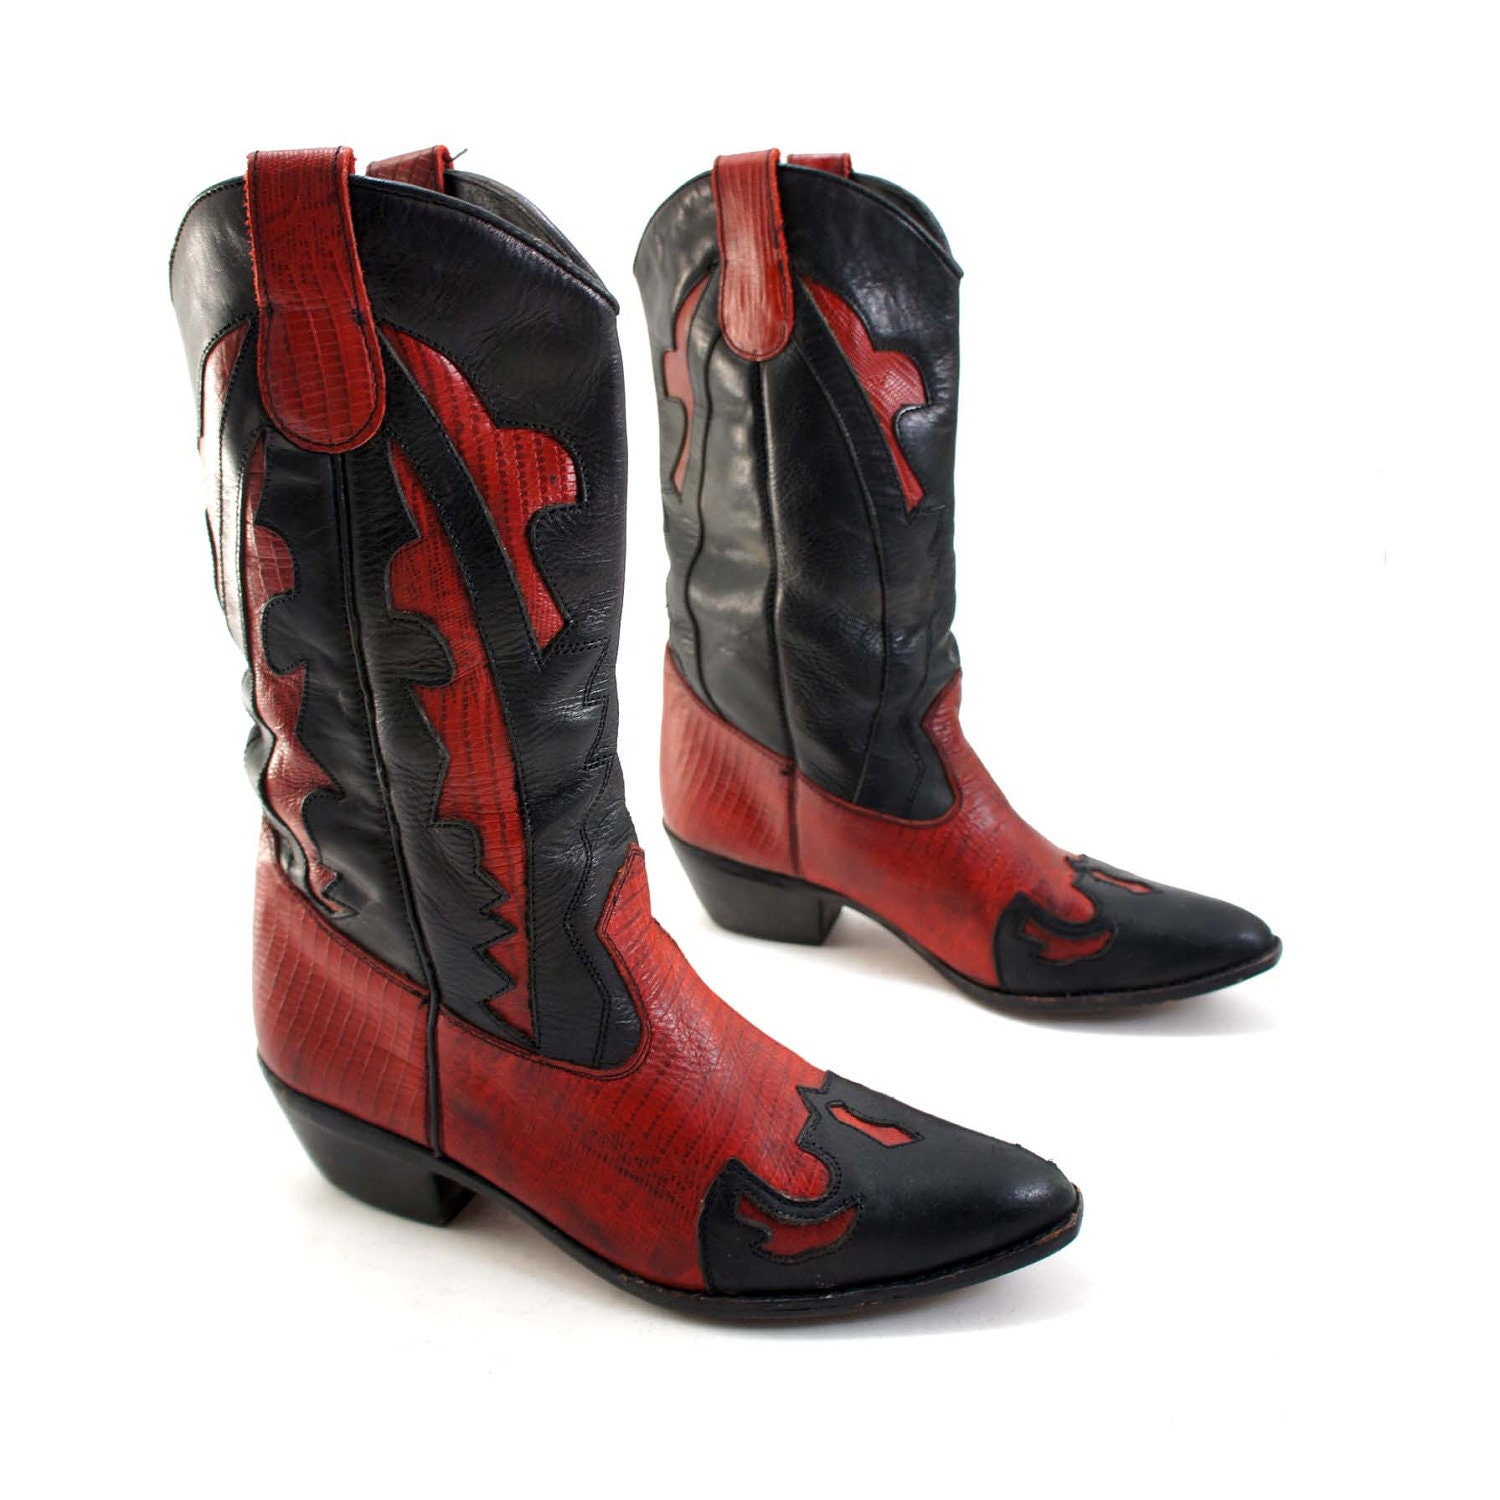 Red And Black Inlay Cowboy Boots With Lizard Textured Leather